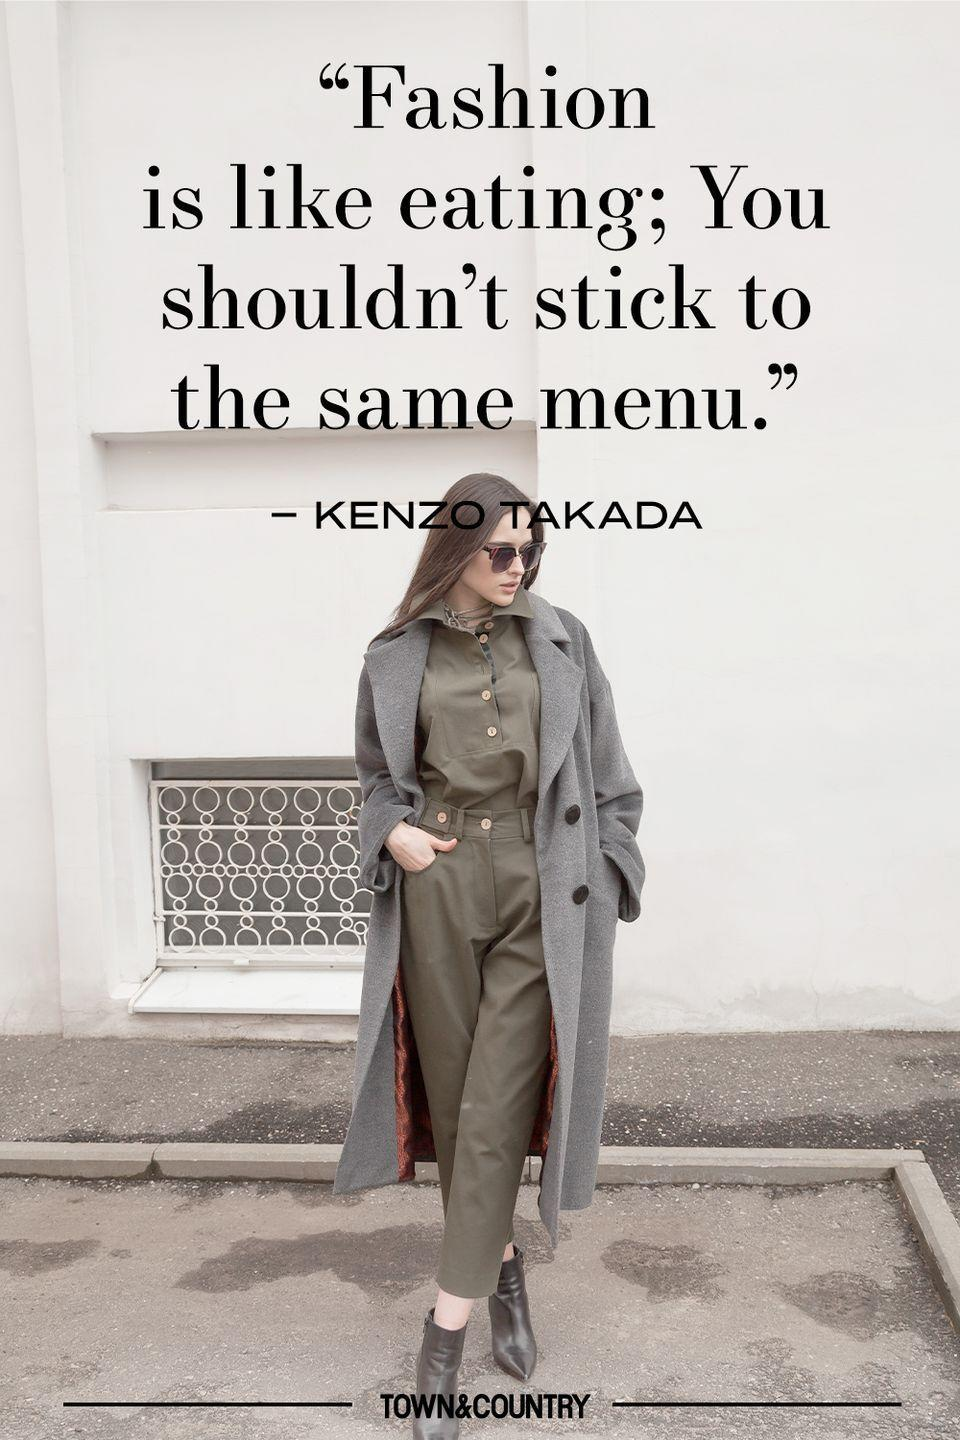 """<p>""""Fashion is like eating; You shouldn't stick to the same menu."""" </p><p>– Kenzo Takada </p><p><strong>MORE:</strong><a href=""""https://www.townandcountrymag.com/leisure/arts-and-culture/g901/best-autumn-quotes/"""" rel=""""nofollow noopener"""" target=""""_blank"""" data-ylk=""""slk:20 Quotes About Fall"""" class=""""link rapid-noclick-resp""""> 20 Quotes About Fall </a></p>"""